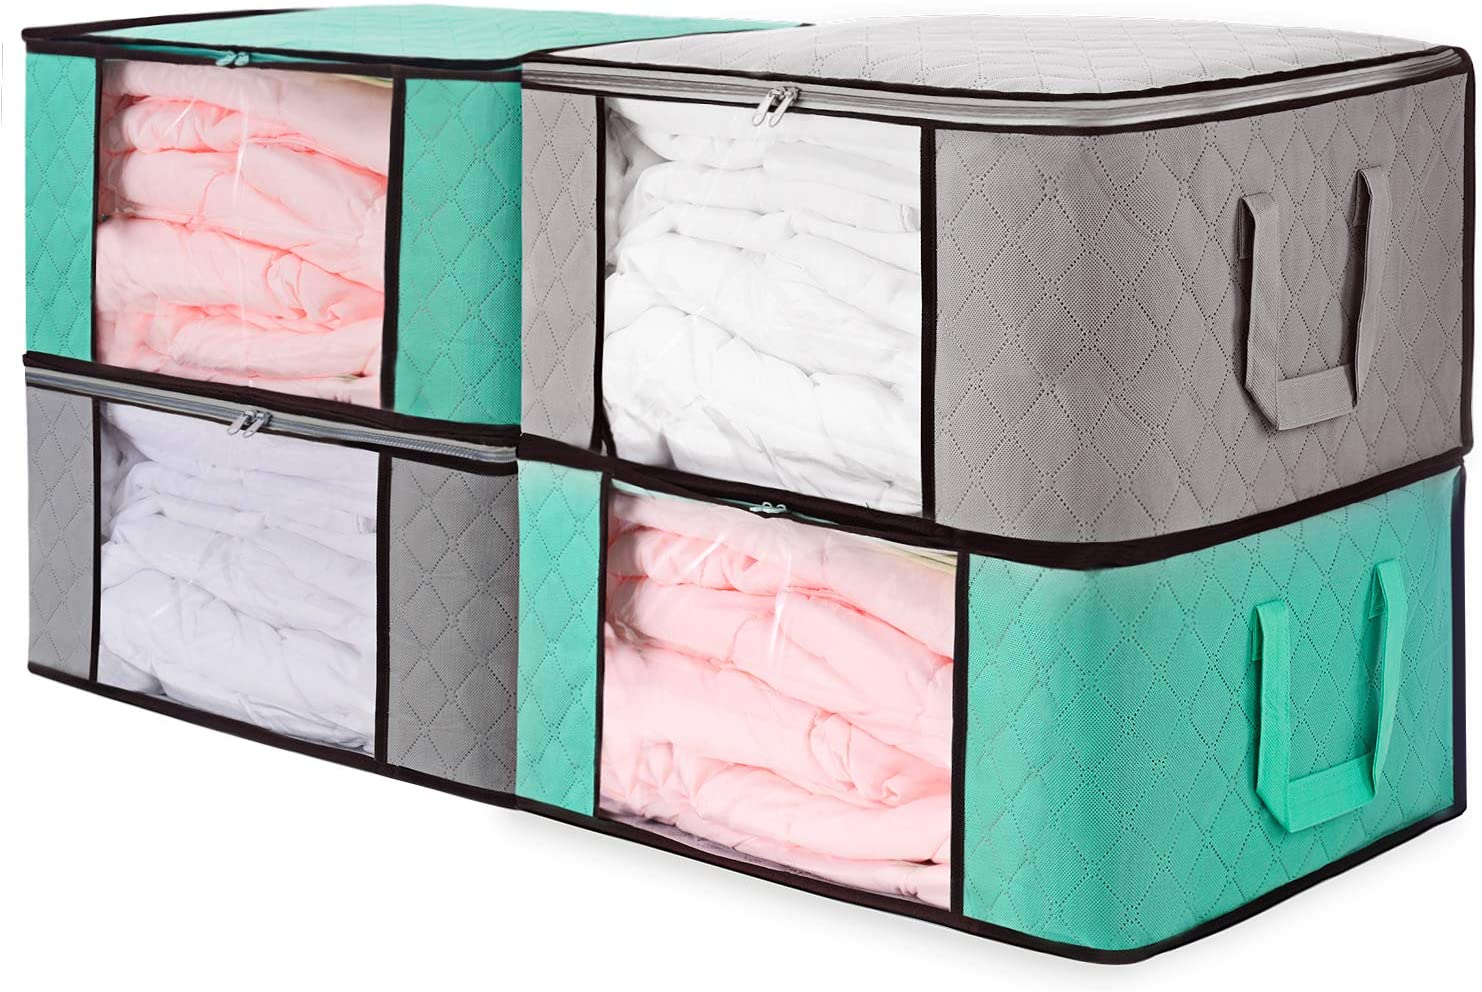 Senbowe Large Foldable Storage Bags, [4 Pack] Collapsible/Foldable Storage Bag Organizers, Large Clear Window, Handles, Zippers,for Clothes, Blankets, Closets, Kitchen,Bedrooms - (21.7 x 15.7 x 9.8�)